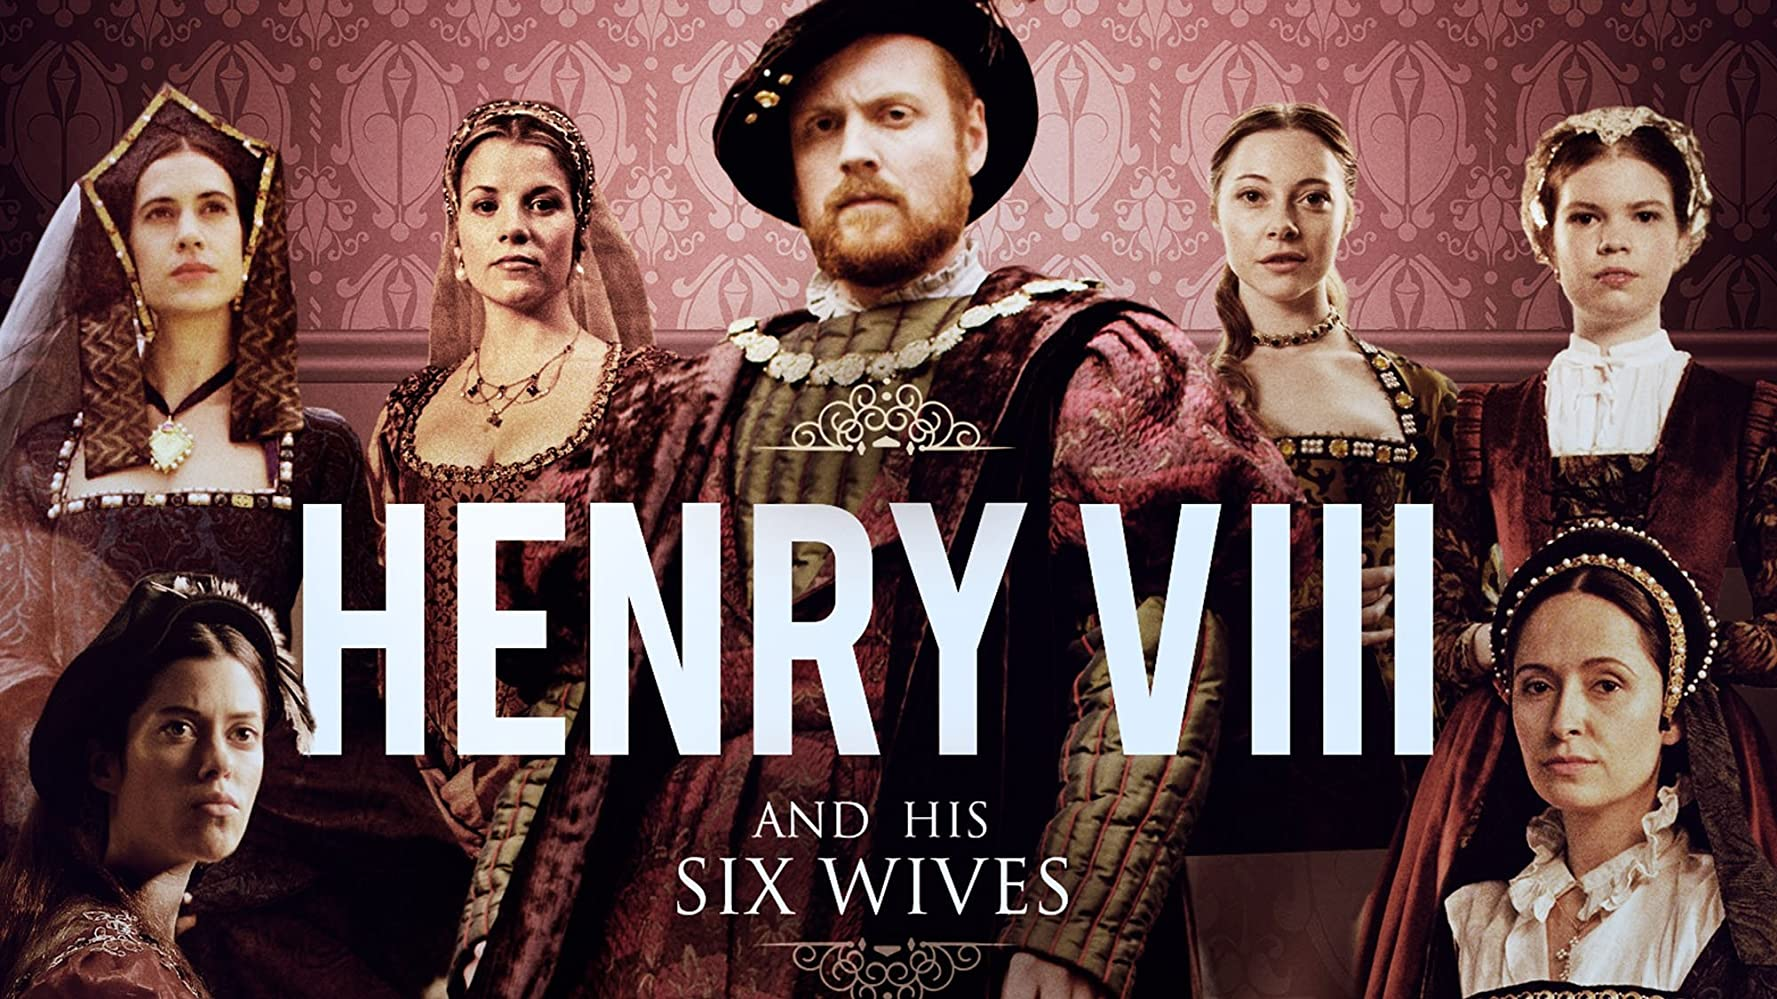 the lives of henry viiis six wives Also spelled kateryn, was the sixth and last wife of henry viii,  to the war in  france and in the unlikely event of the loss of his life, she.